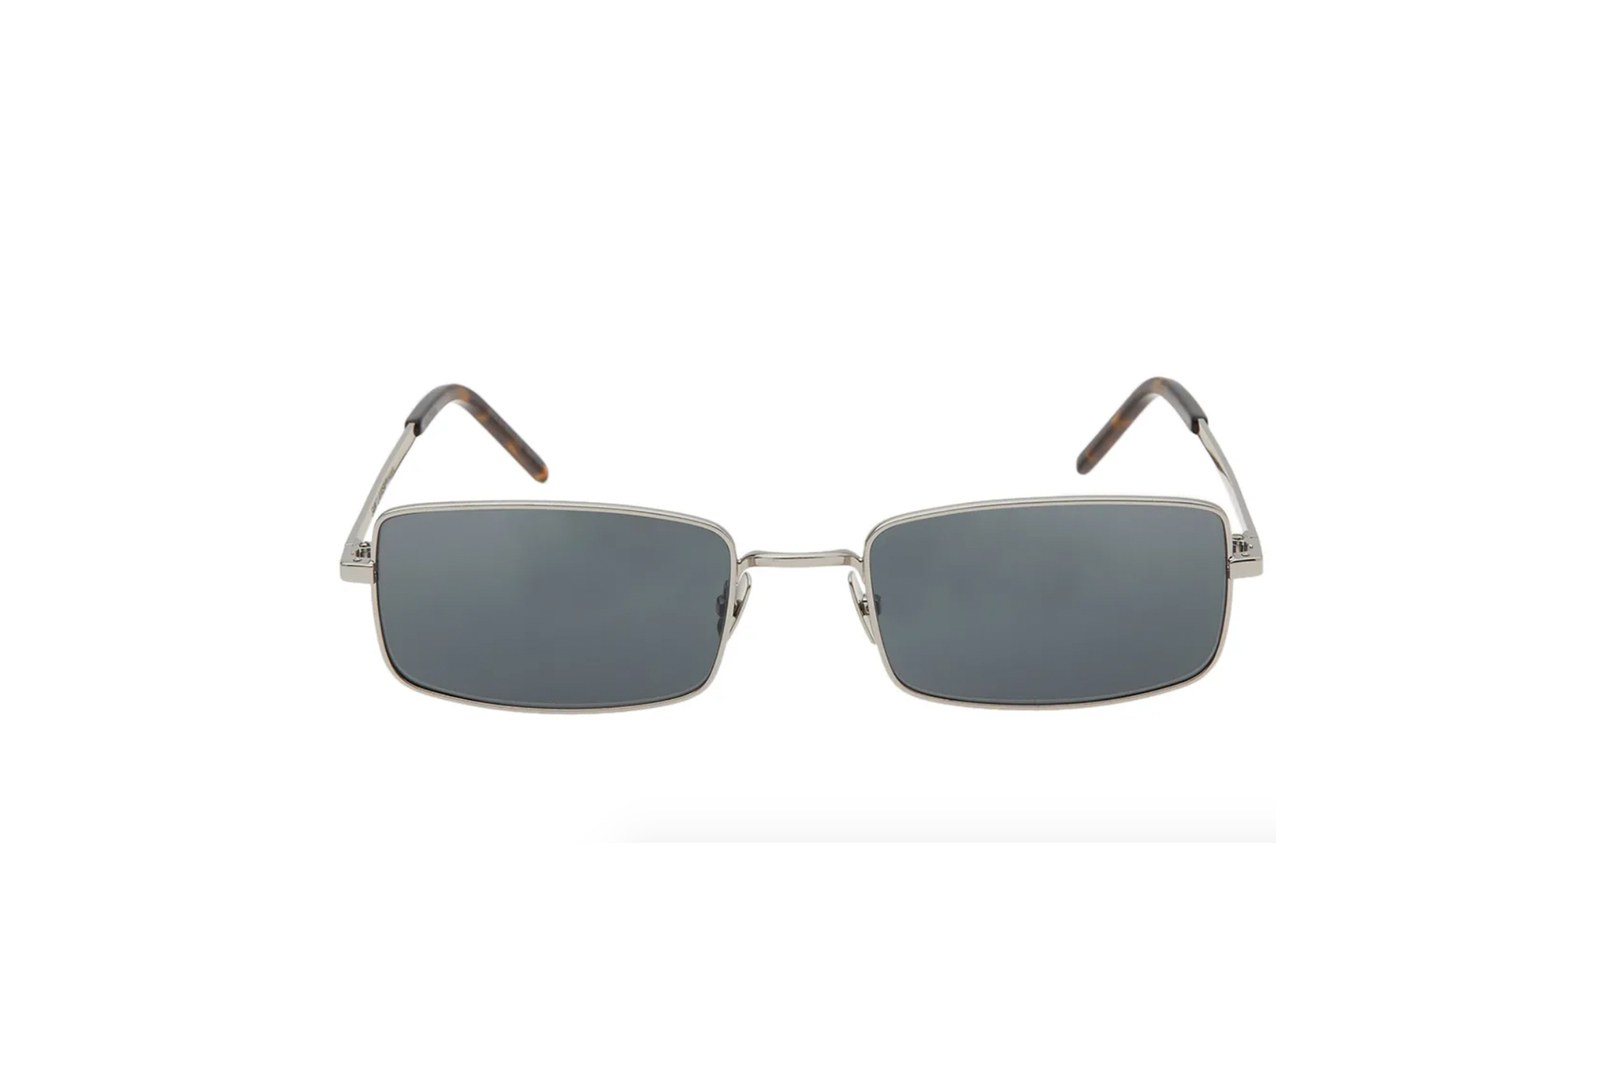 Kính Saint Laurent SL 252 sunglasses